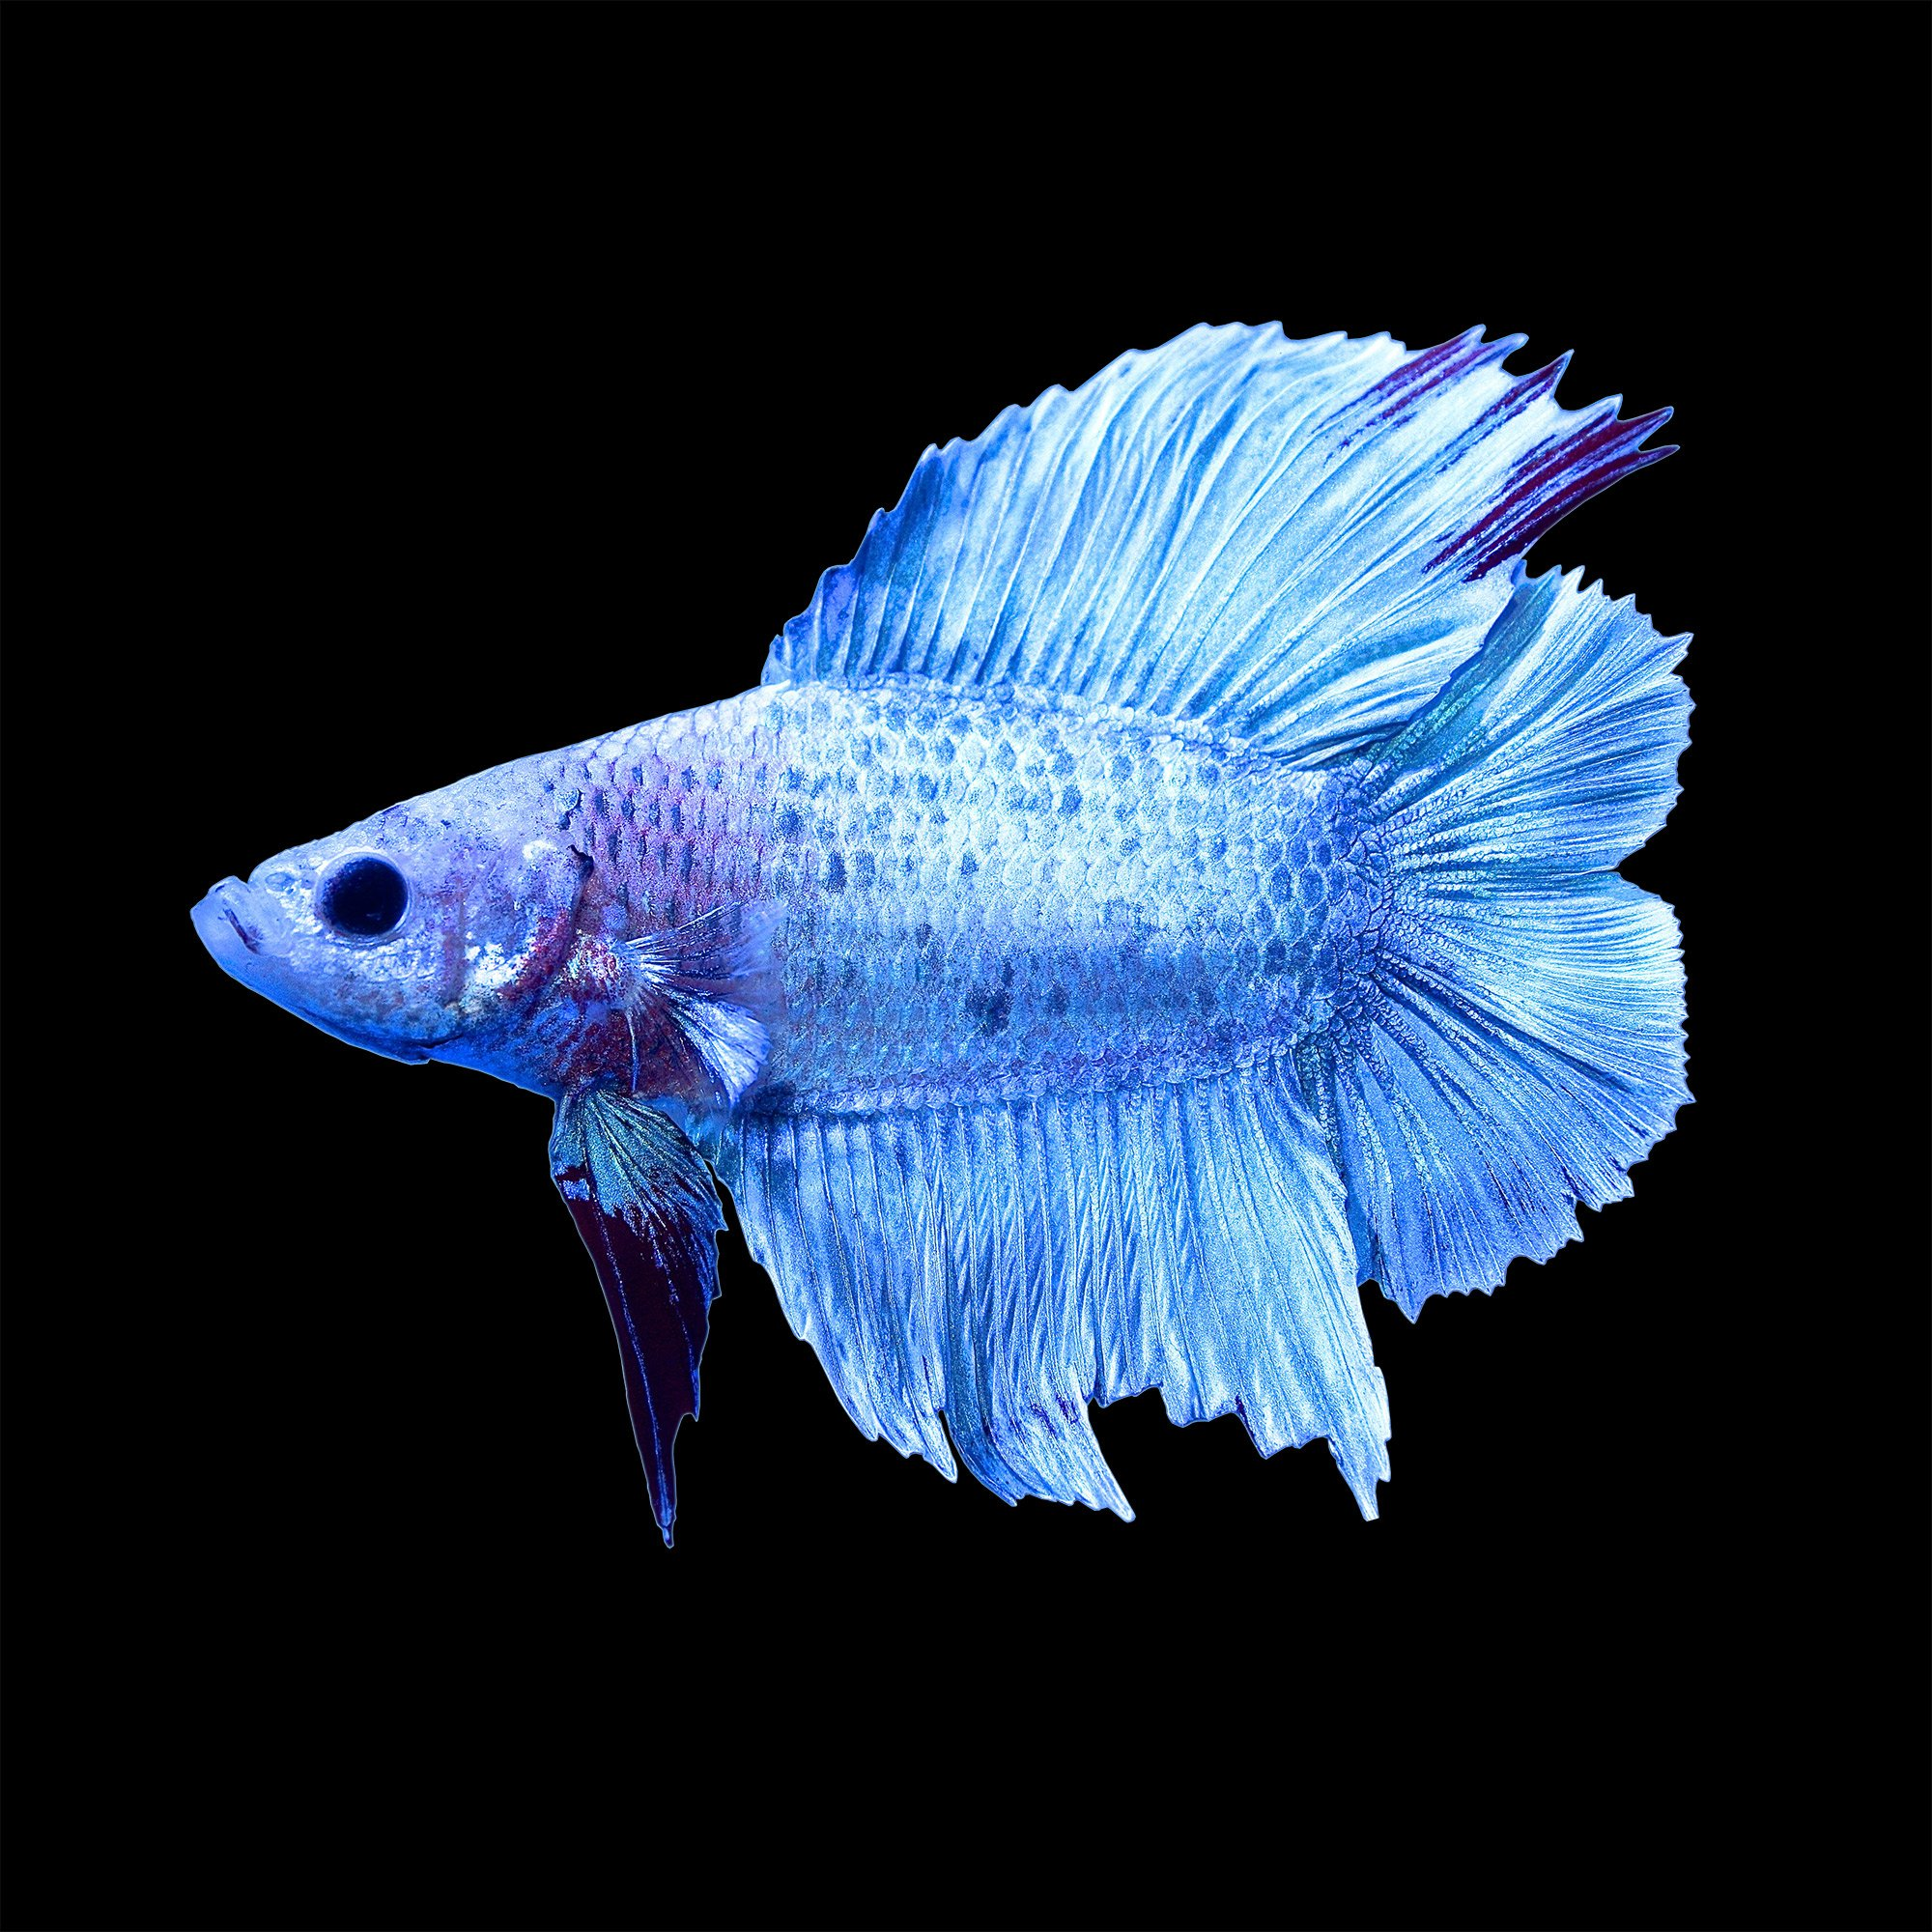 Male halfmoon doubletail plakat betta fish petco for Types of betta fish petco